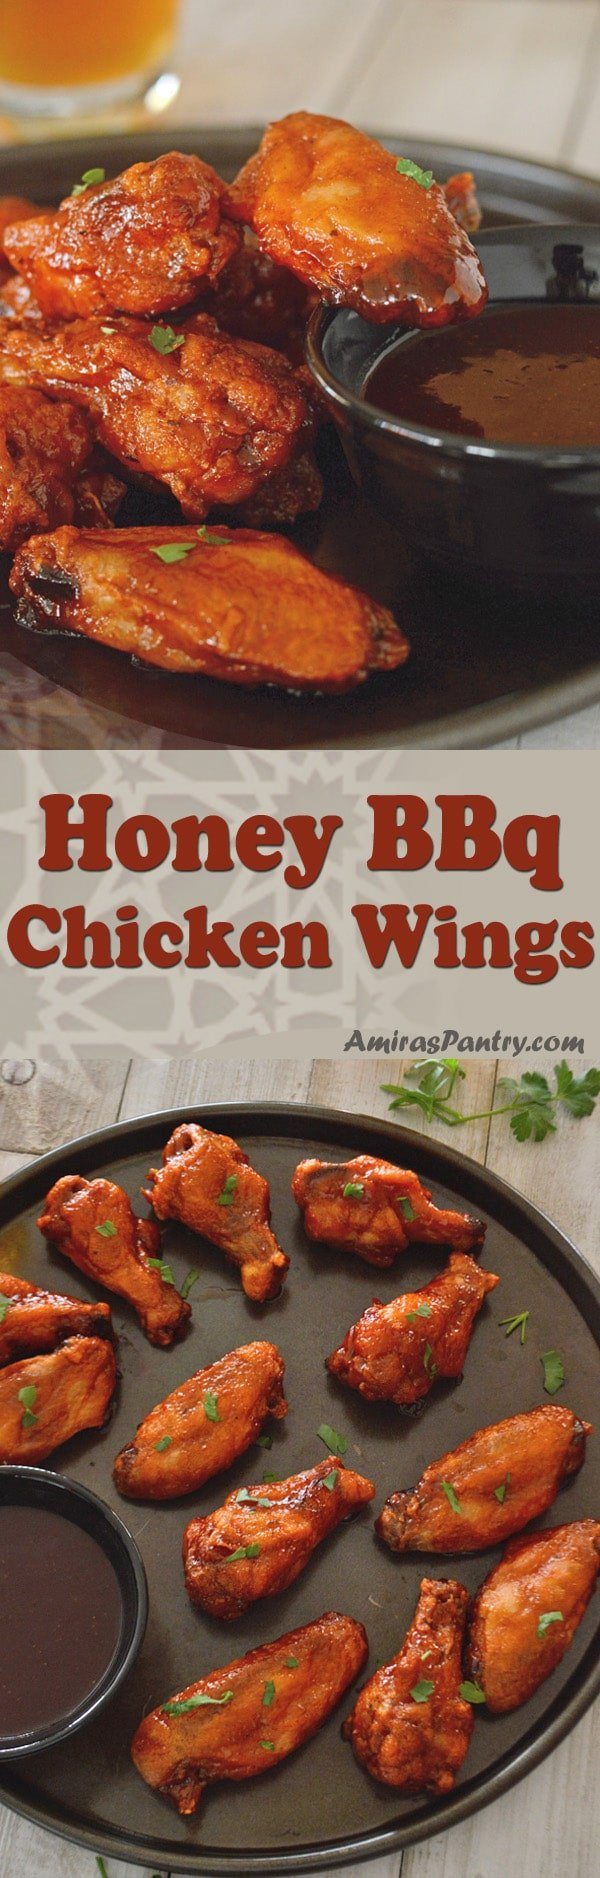 Crispy oven wings, super tasty , smoky, healthy and sweet but not too sweet. Honey barbecue chicken wings is the super bowl wing recipes that you'll need. A real crowdpleaser, a perfect game day appetizer.